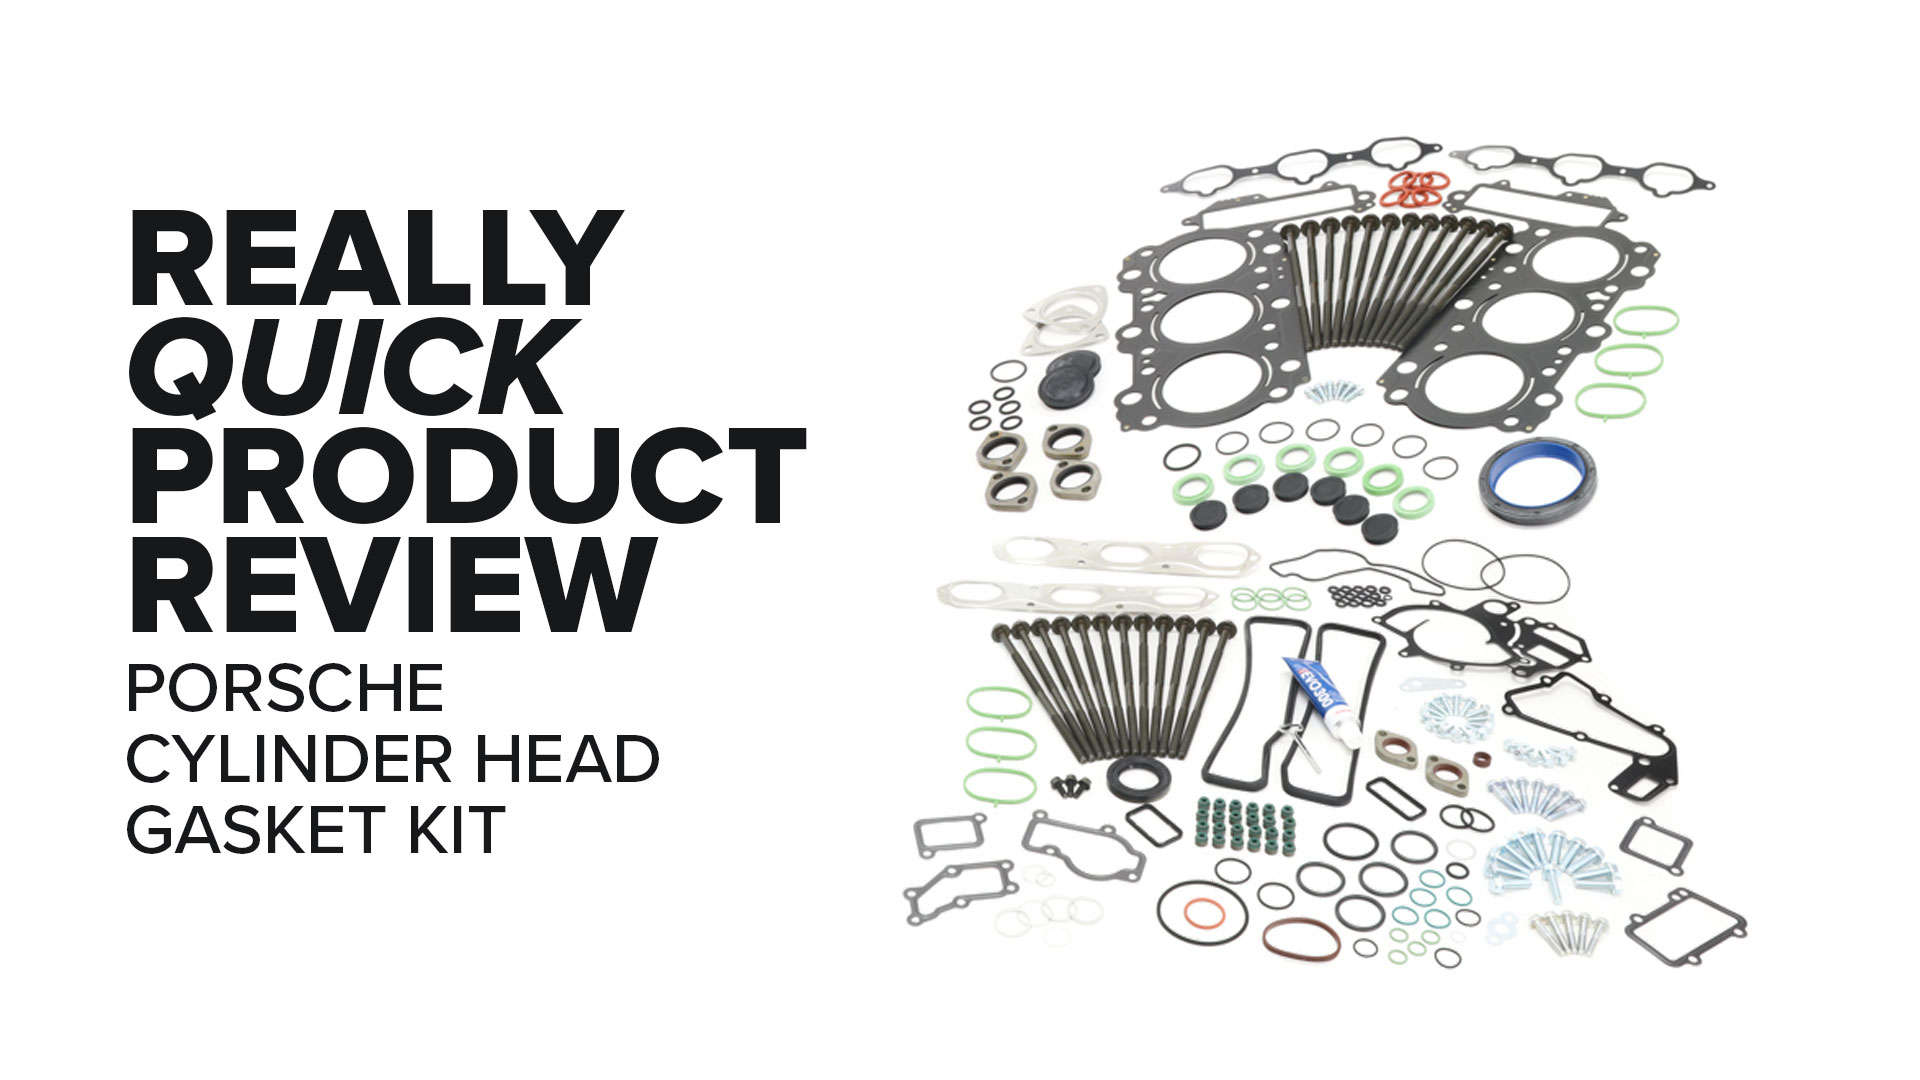 Porsche 996 911 Cylinder Head Gasket Kits - Symptoms And Product Review